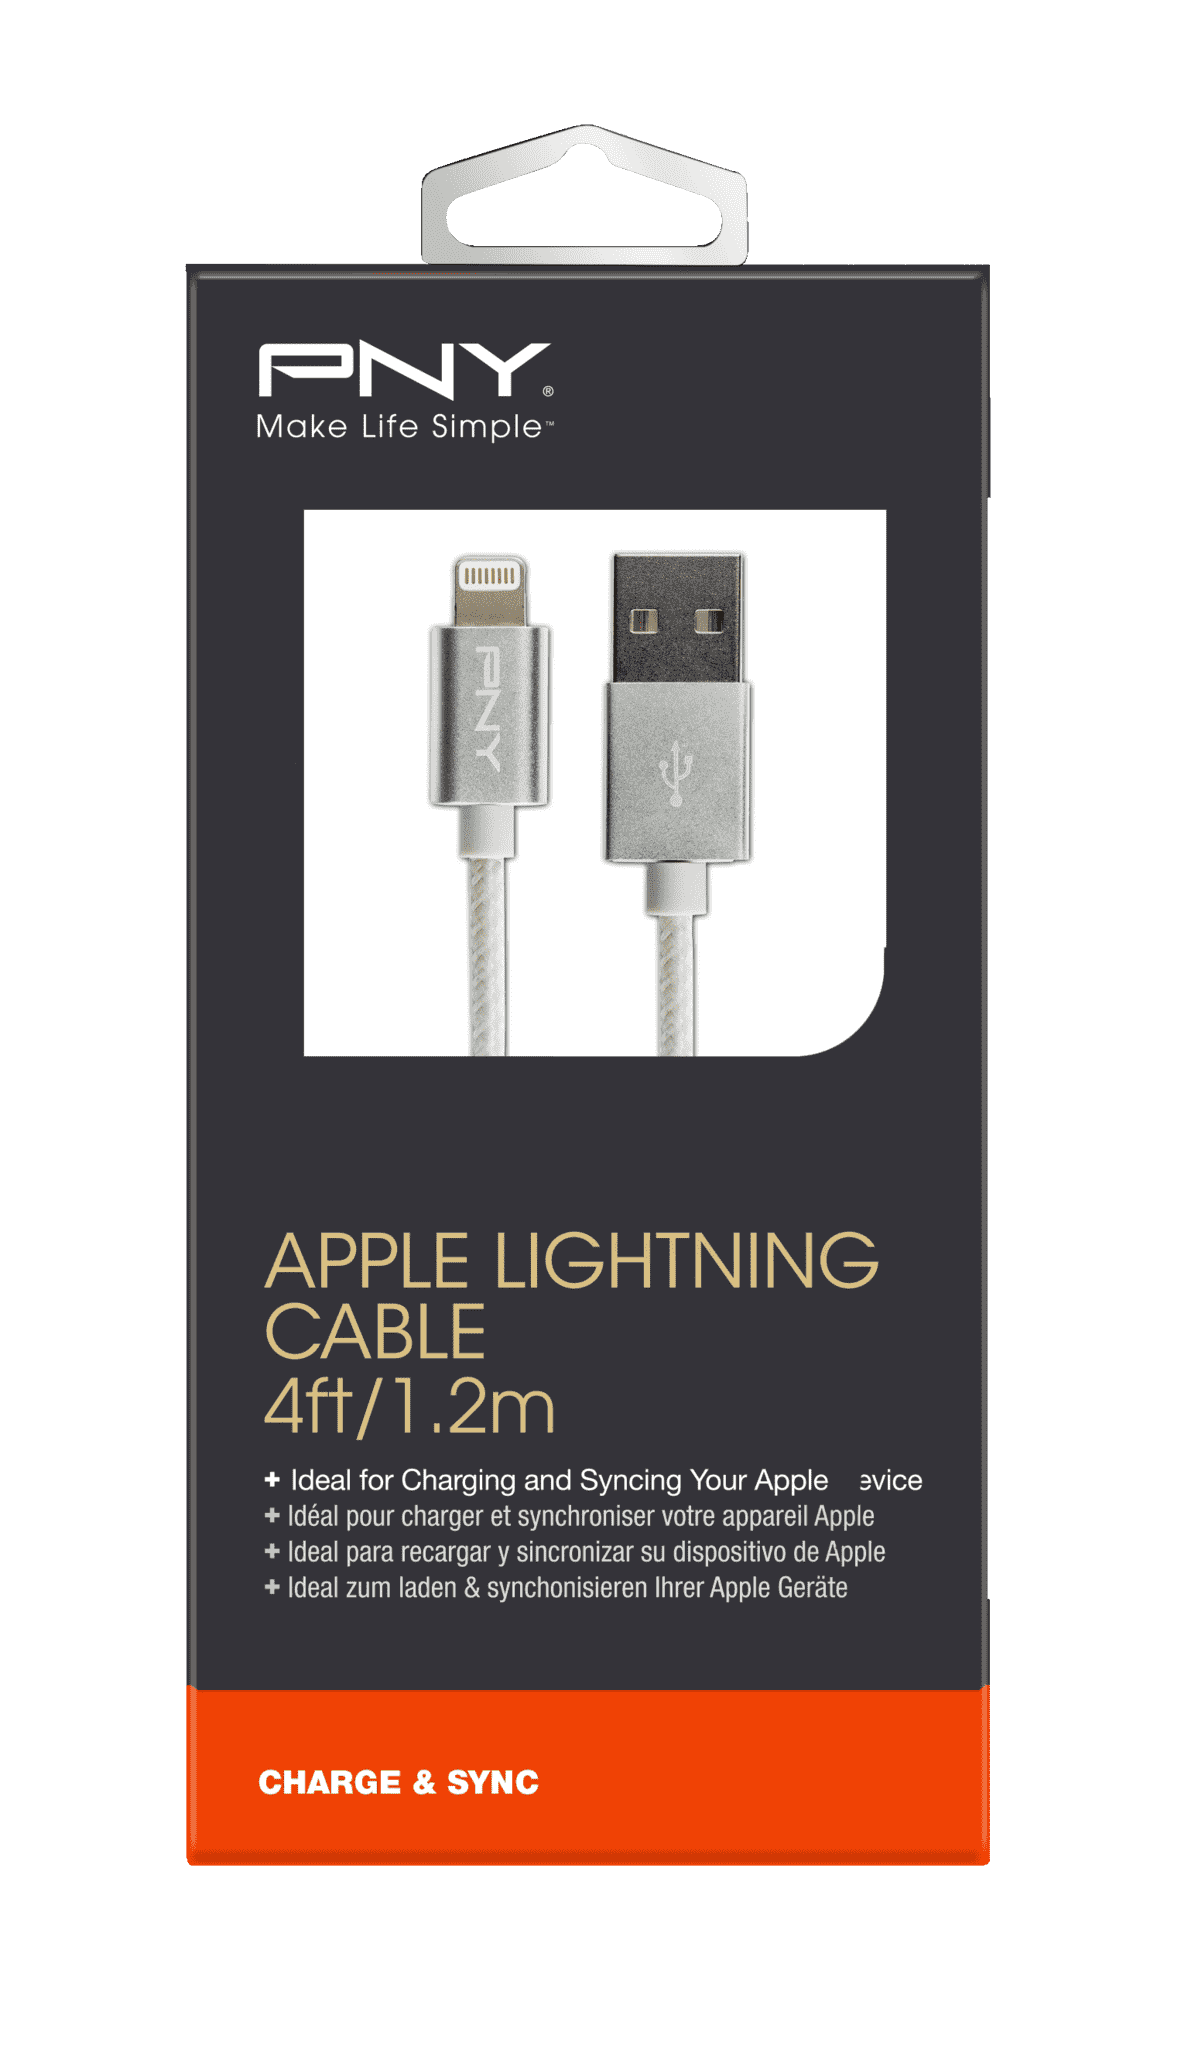 PNY C-UA-LN-S01-04 CHARGE & SYNC CABLE 1,2M SILVER, Lightning Lade- und Synchronisationskabel, 1.2 m | 03536401519652